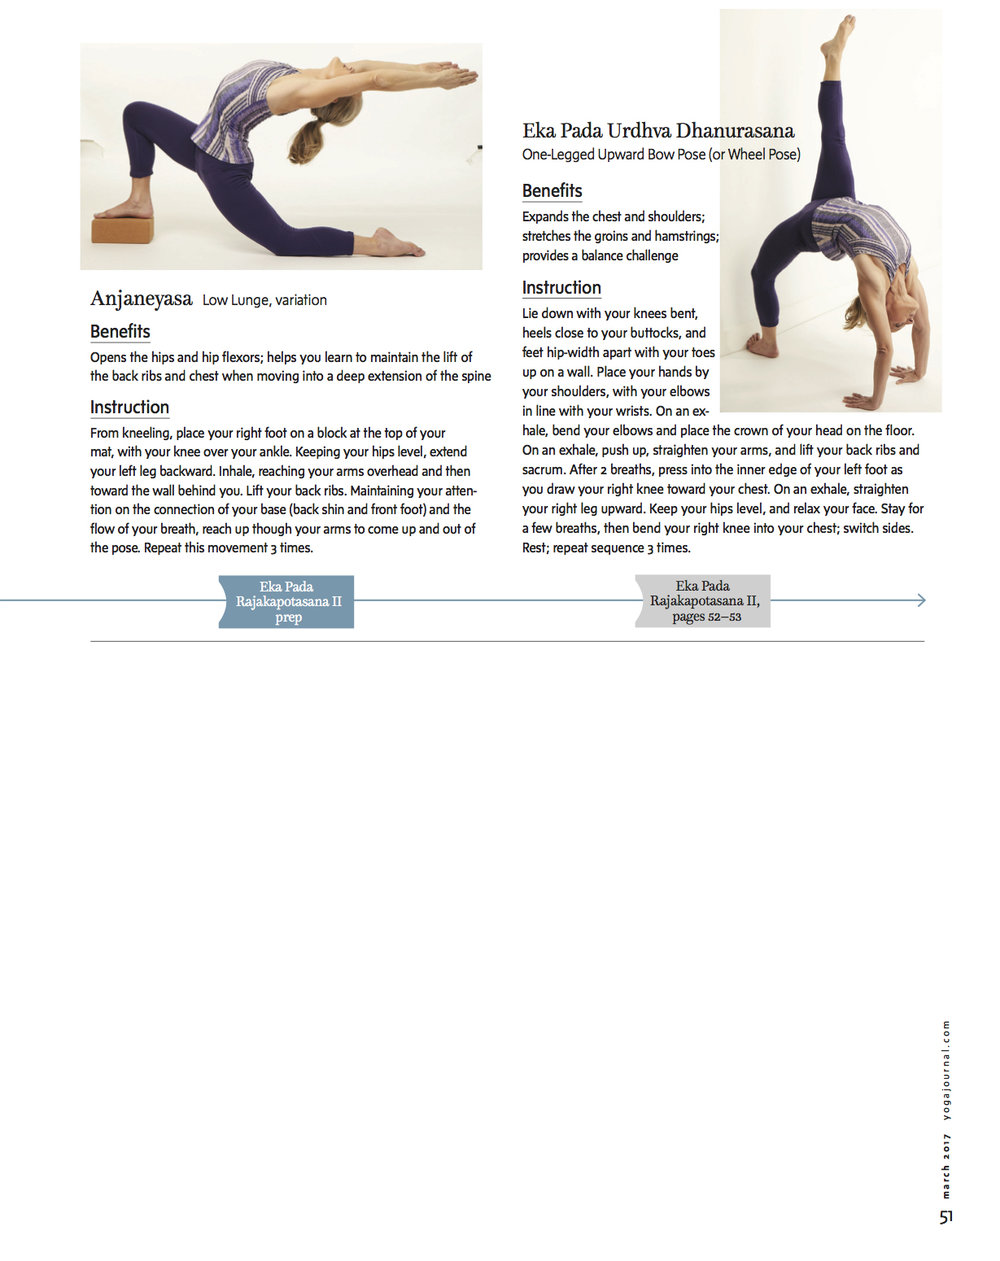 March Yogapedia page 4.jpg